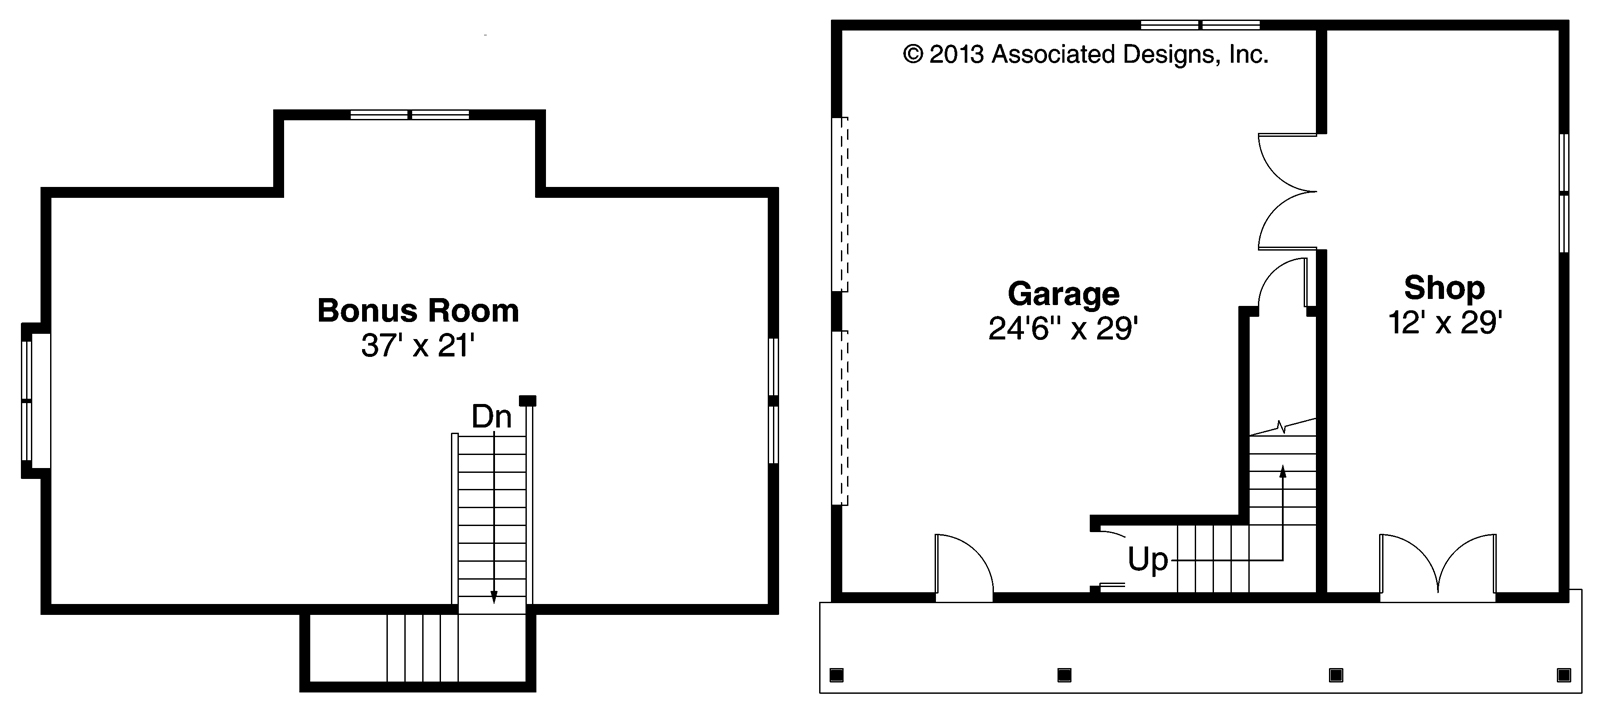 Garage plans with bonus room famin for Room above garage plans